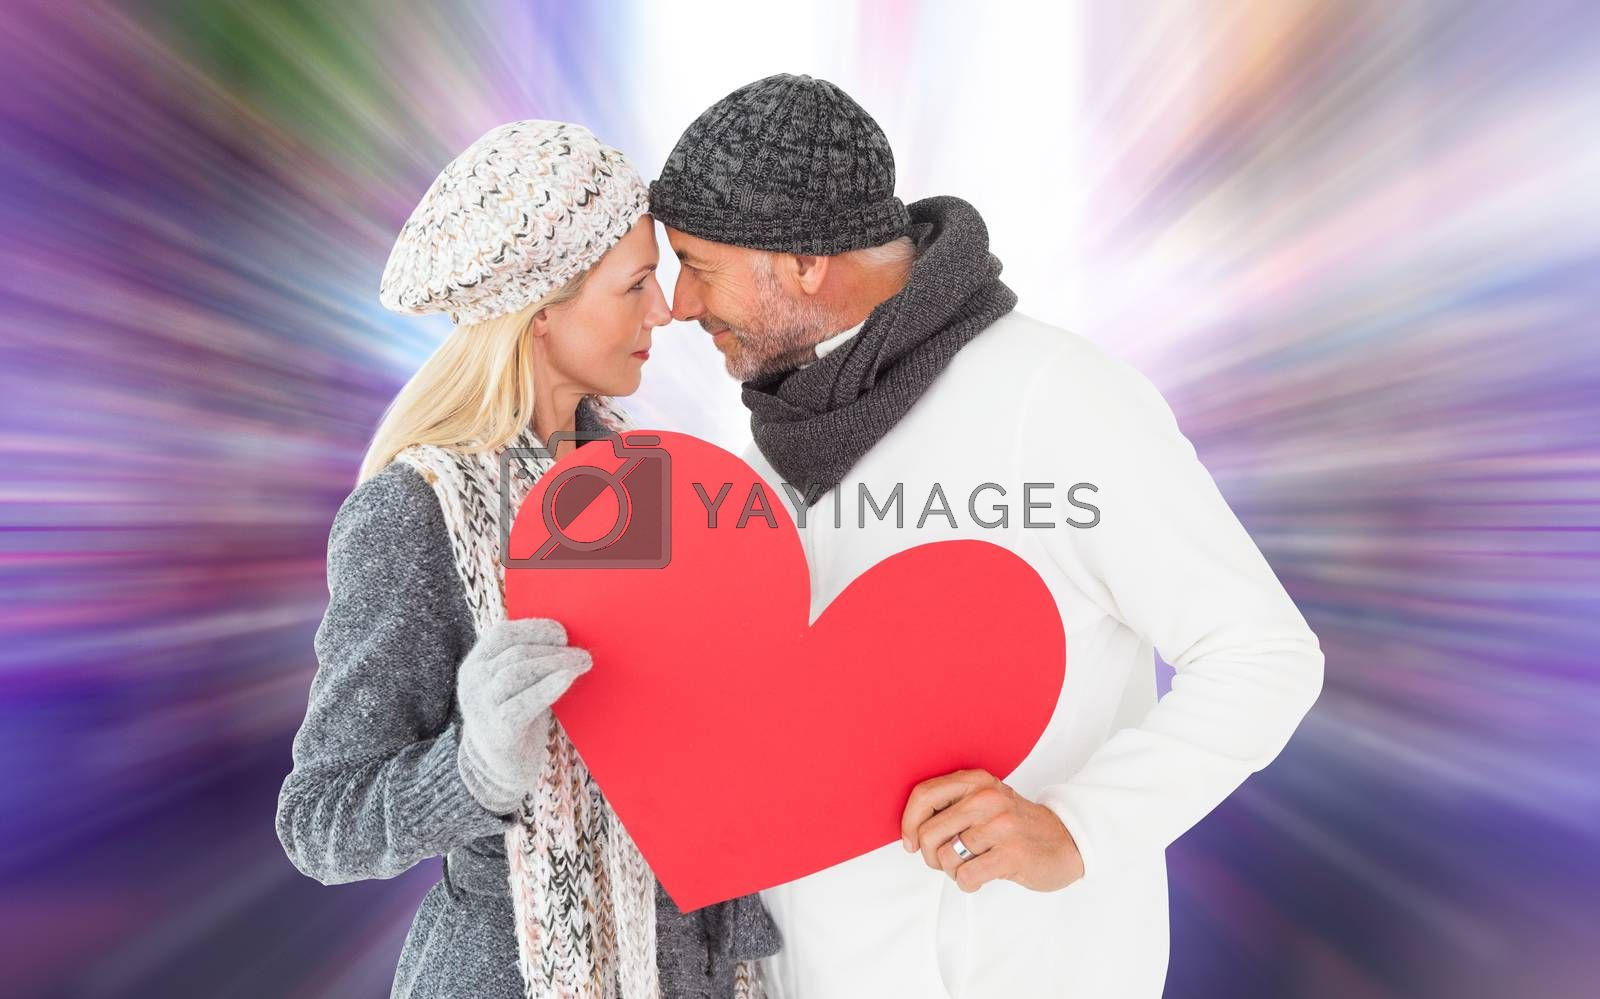 Smiling couple in winter fashion posing with heart shape against glittering screen in urban setting